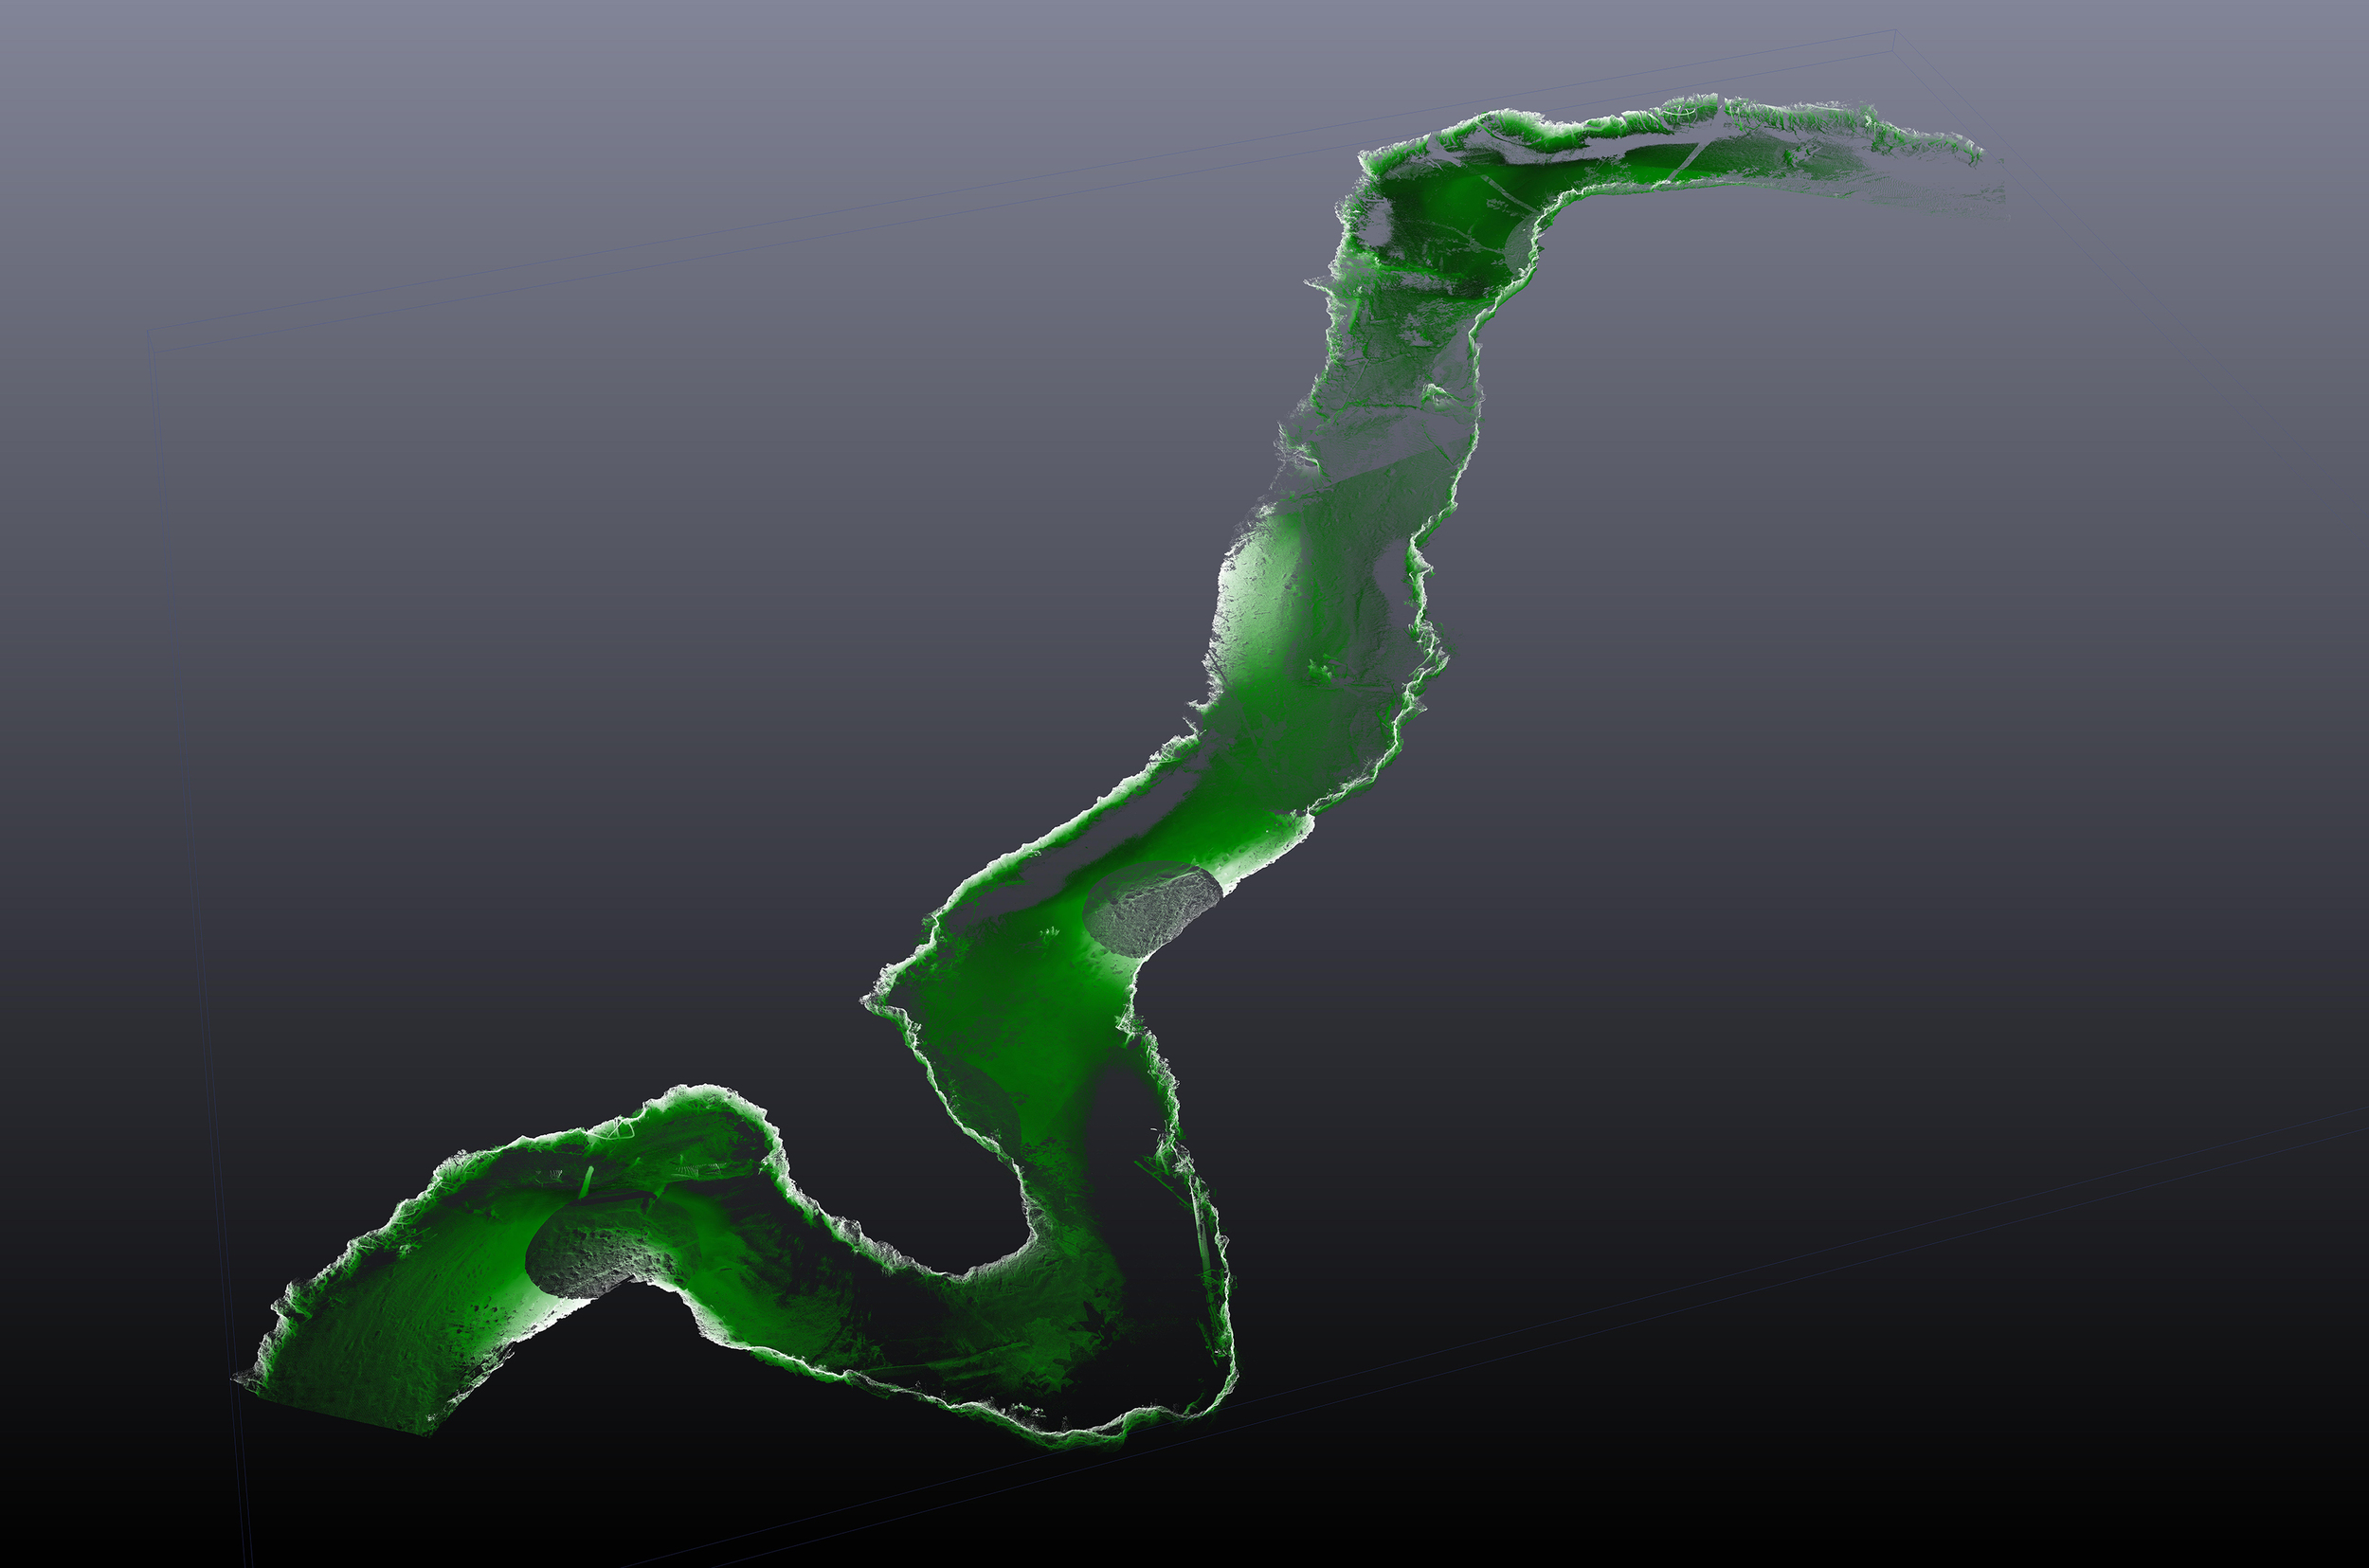 3-D Laser Scan of a stream channel